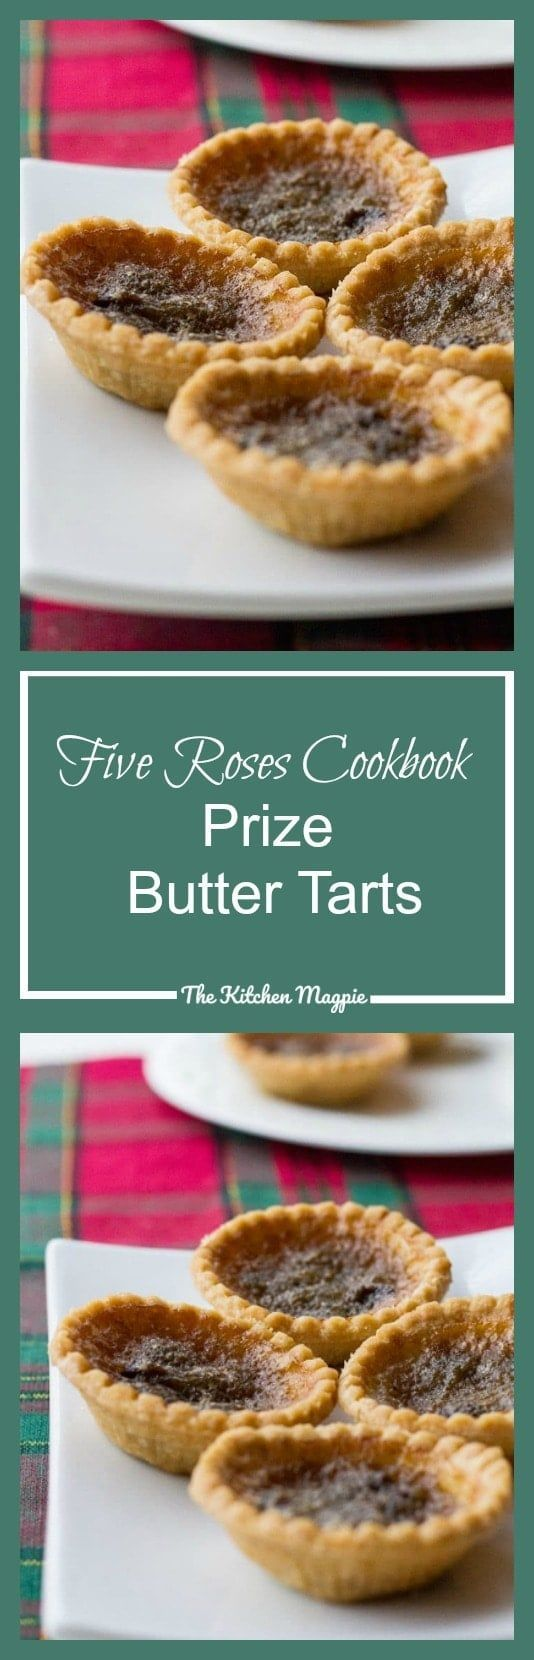 Five Roses Cookbook Prize Butter Tarts | The Kitchen Magpie